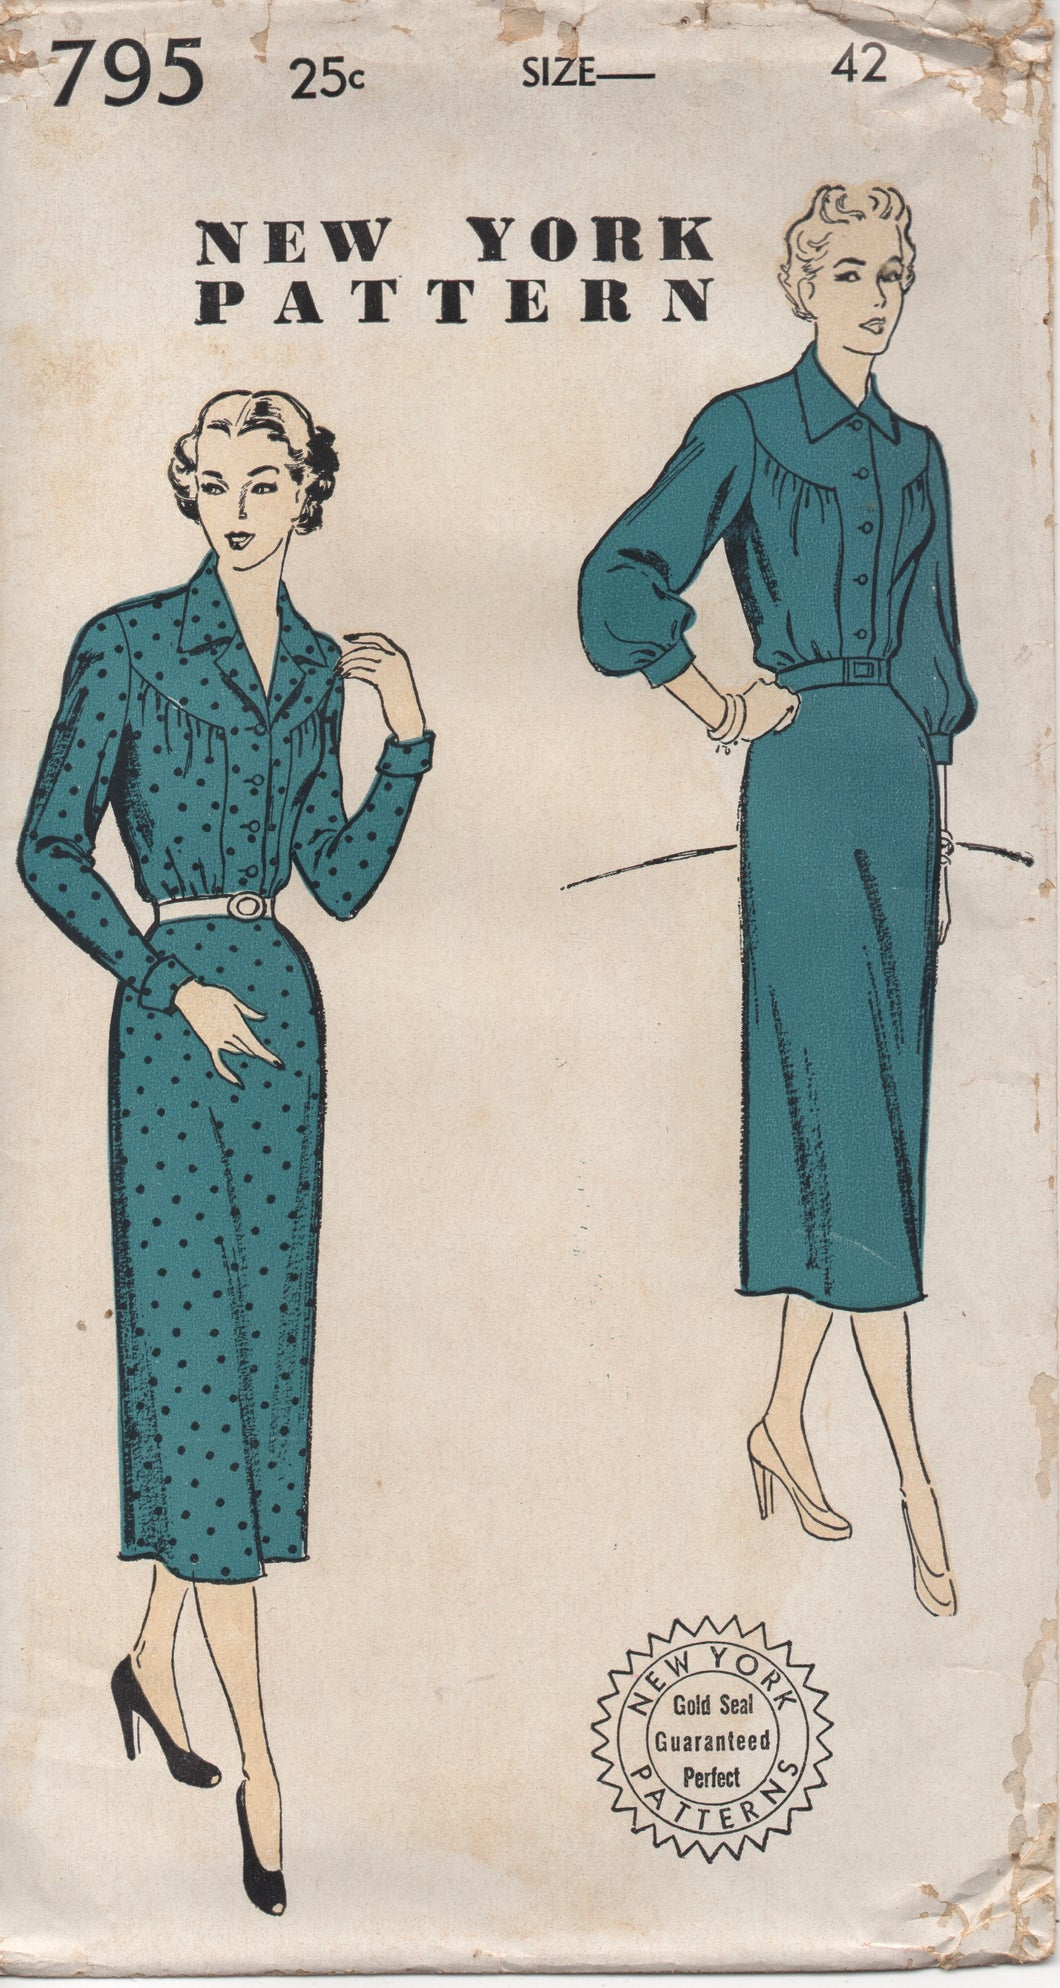 1950's New York One Piece Dress with Large Round Yoke and Slim or Bishop Sleeve - Bust 42